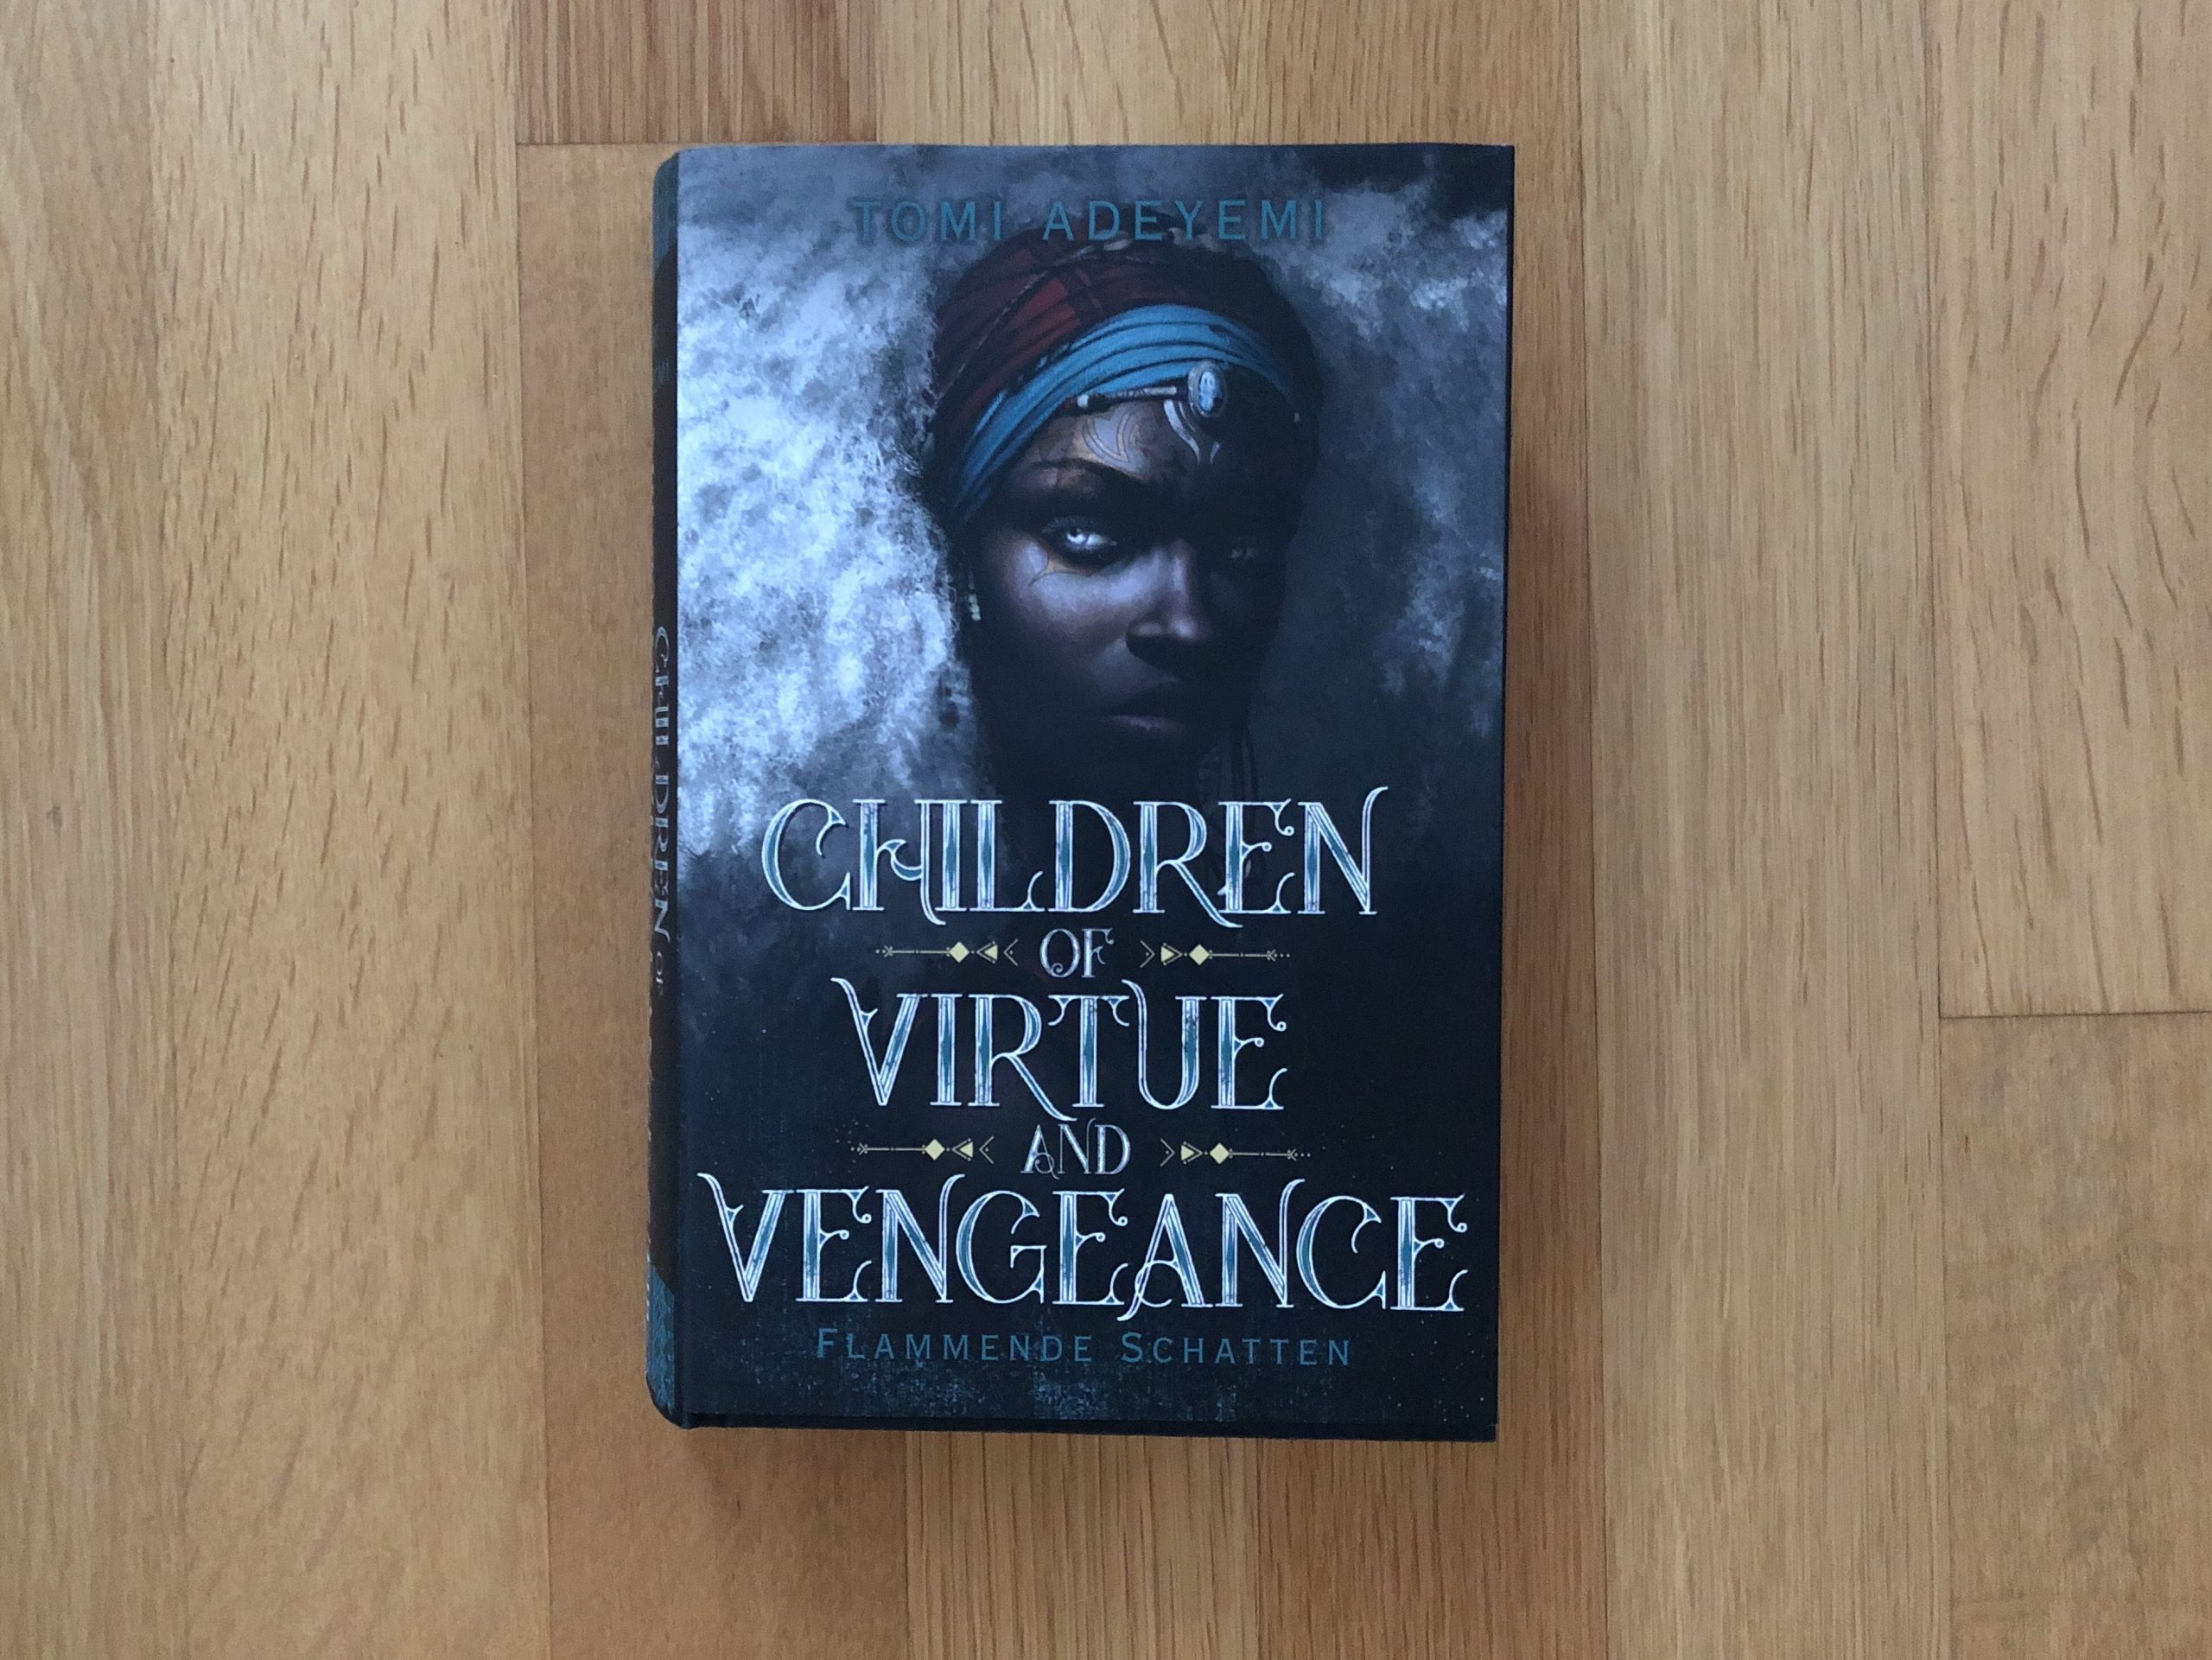 Children of Virtue and Vengeance: Flammende Schatten